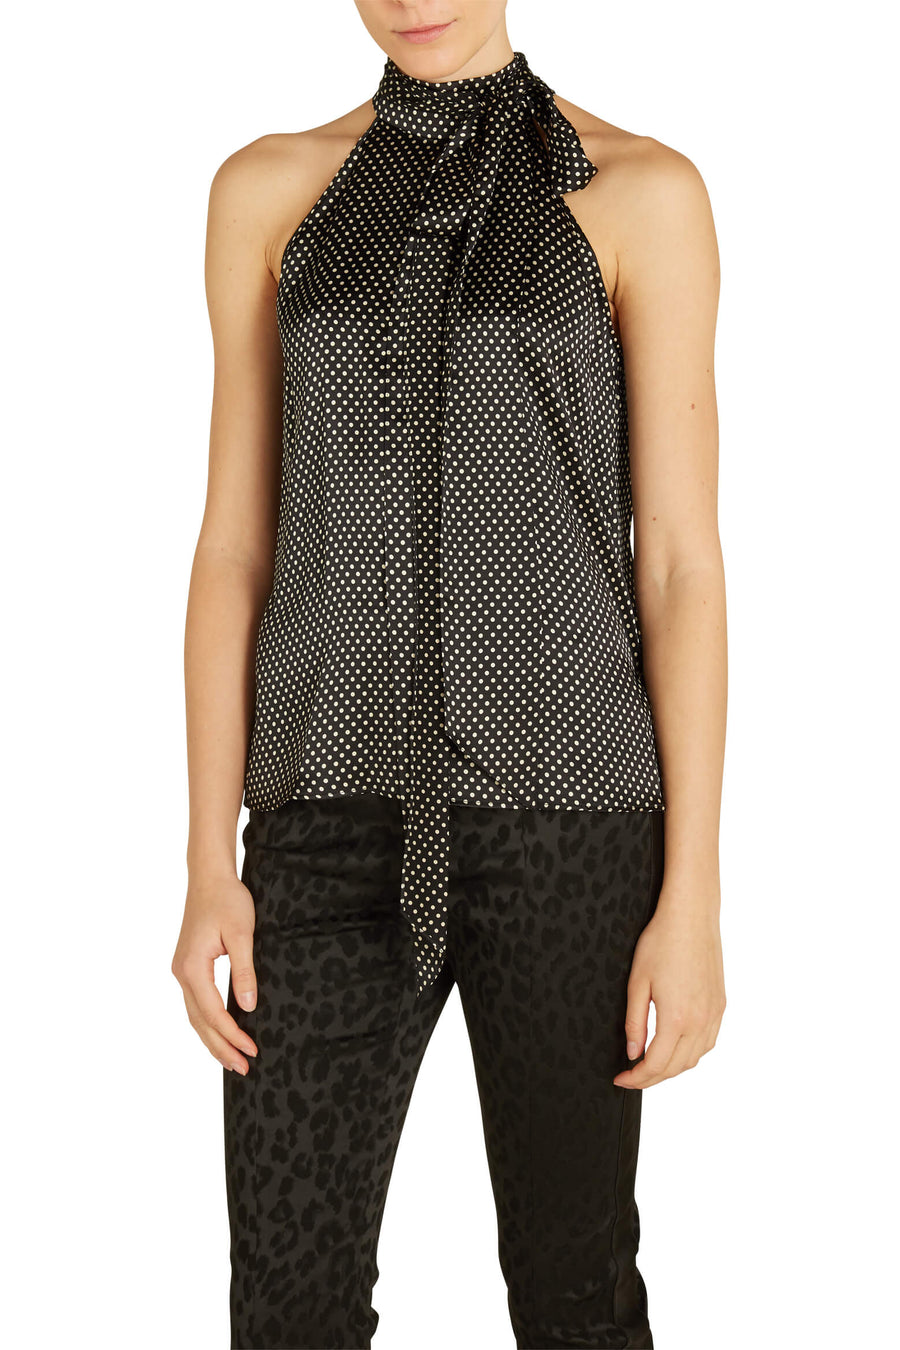 Ceyda Halter Top in Black and Ivory Dots from The New Trend